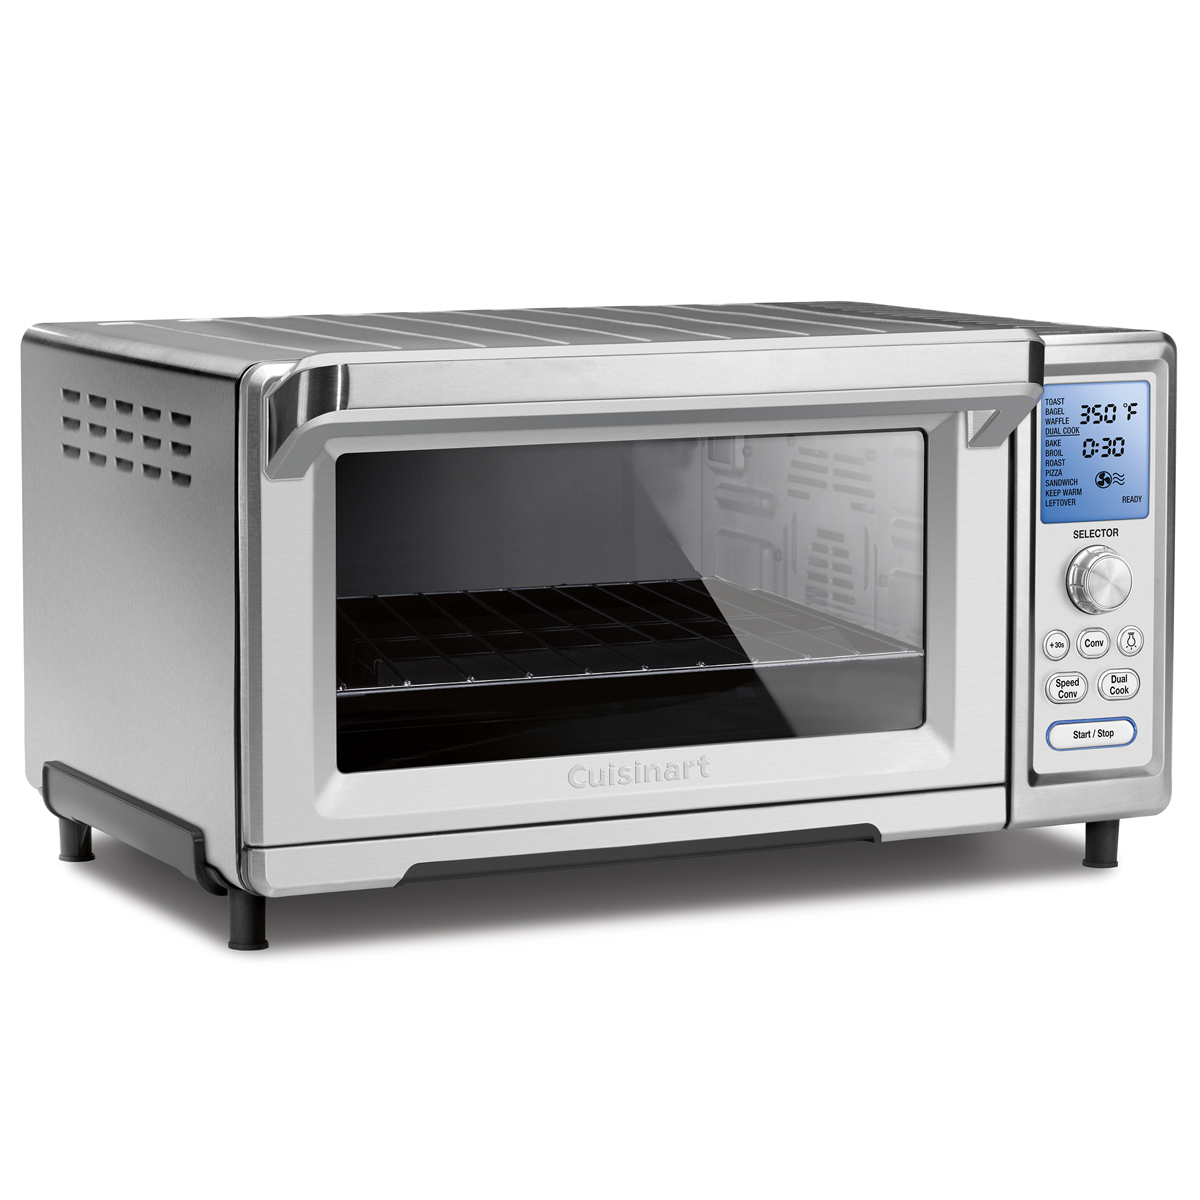 Chef's Convection Countertop Oven | Cuisinart